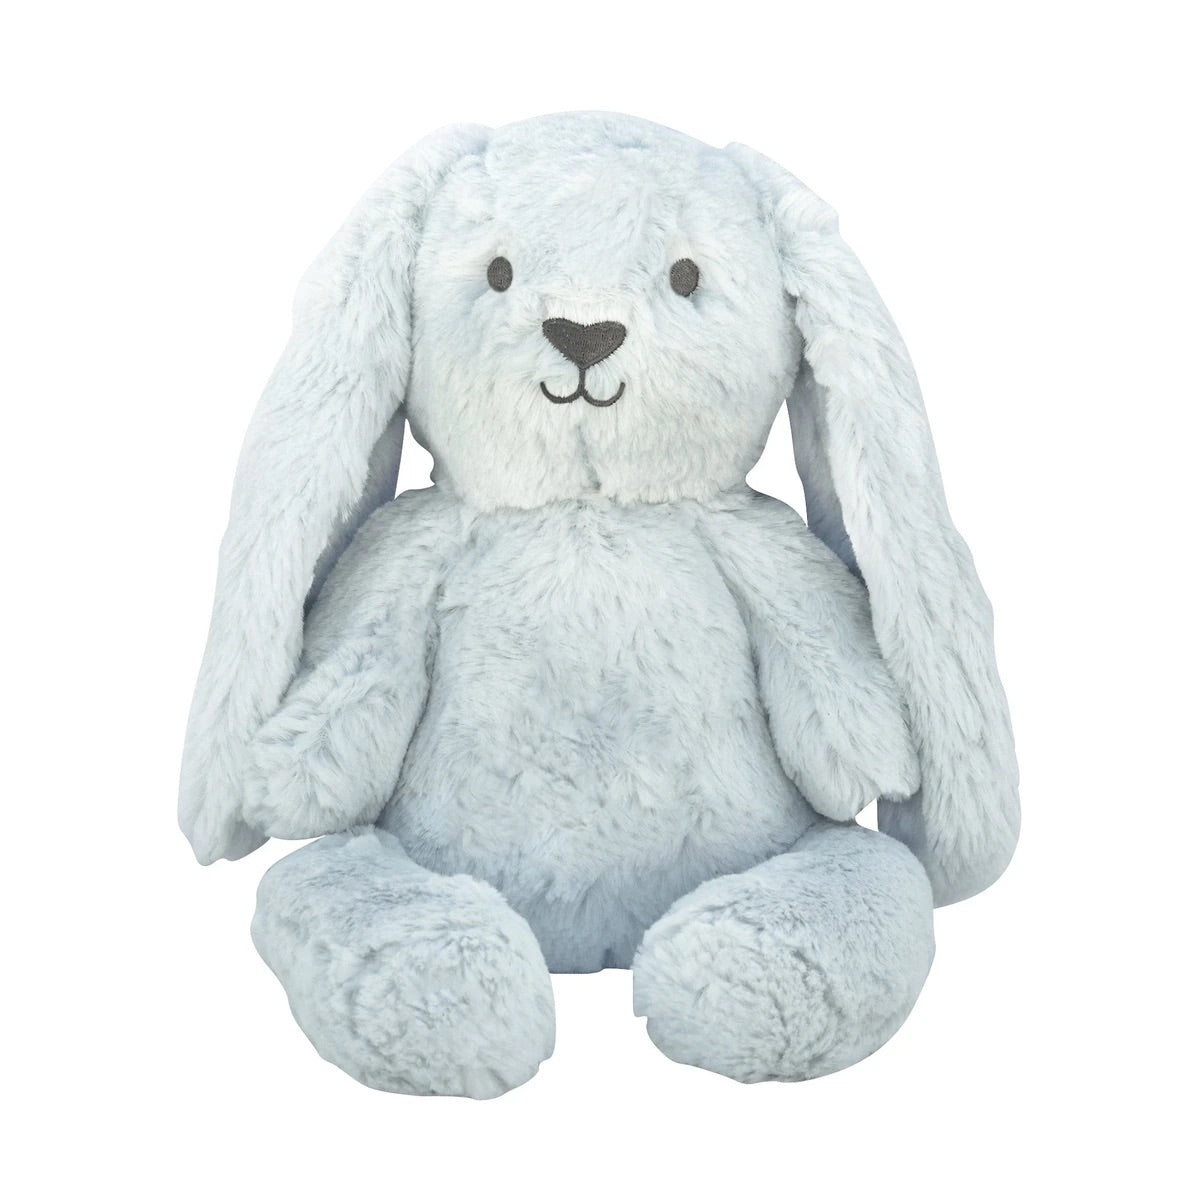 Blue Bunny Stuffed Animal | Plush Toy | Baxter Bunny Huggie